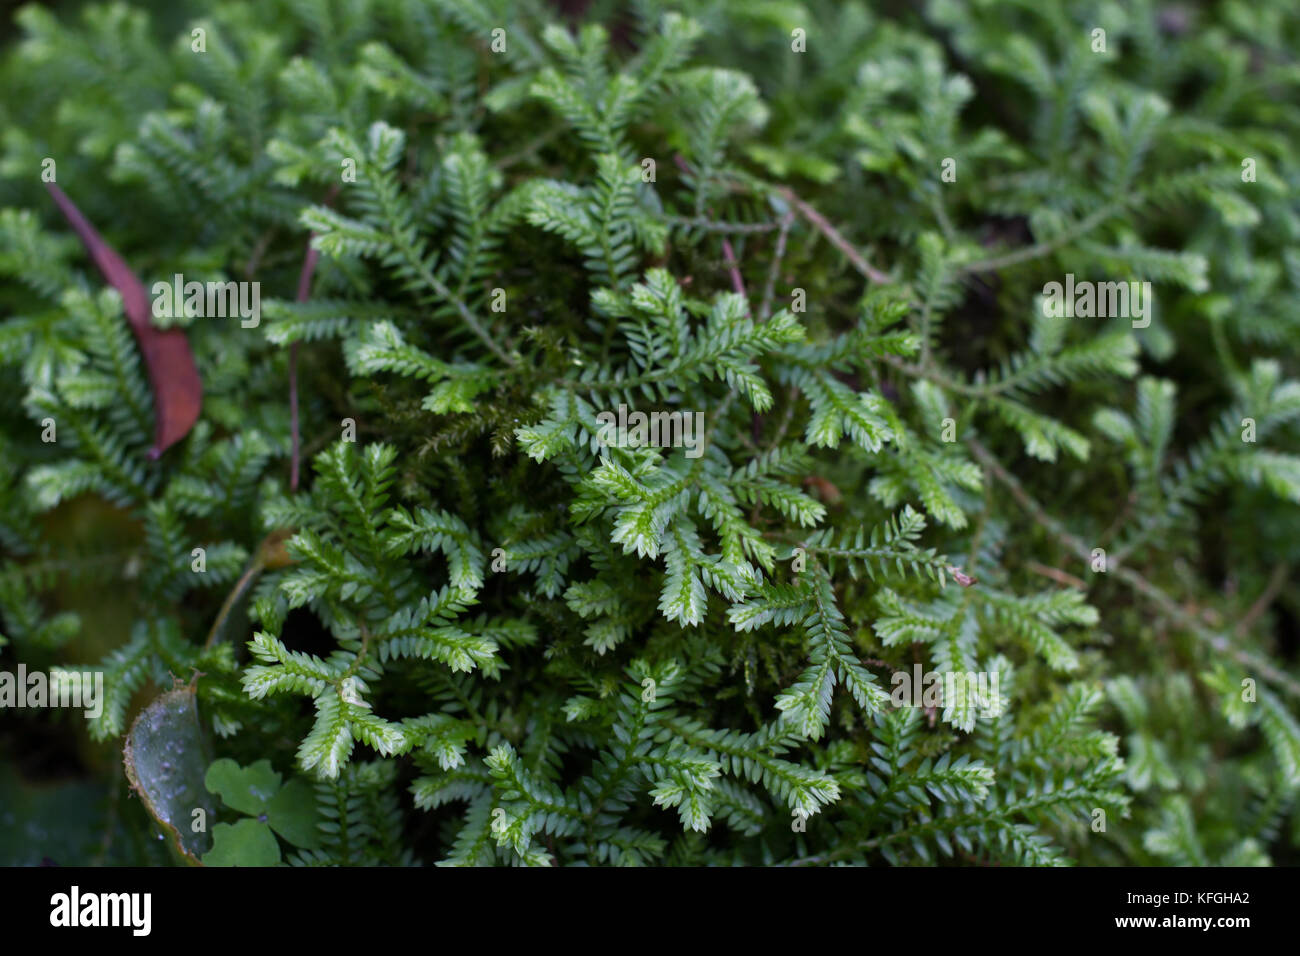 Selaginella sp. fern. Spike mosses expand out stones. - Stock Image